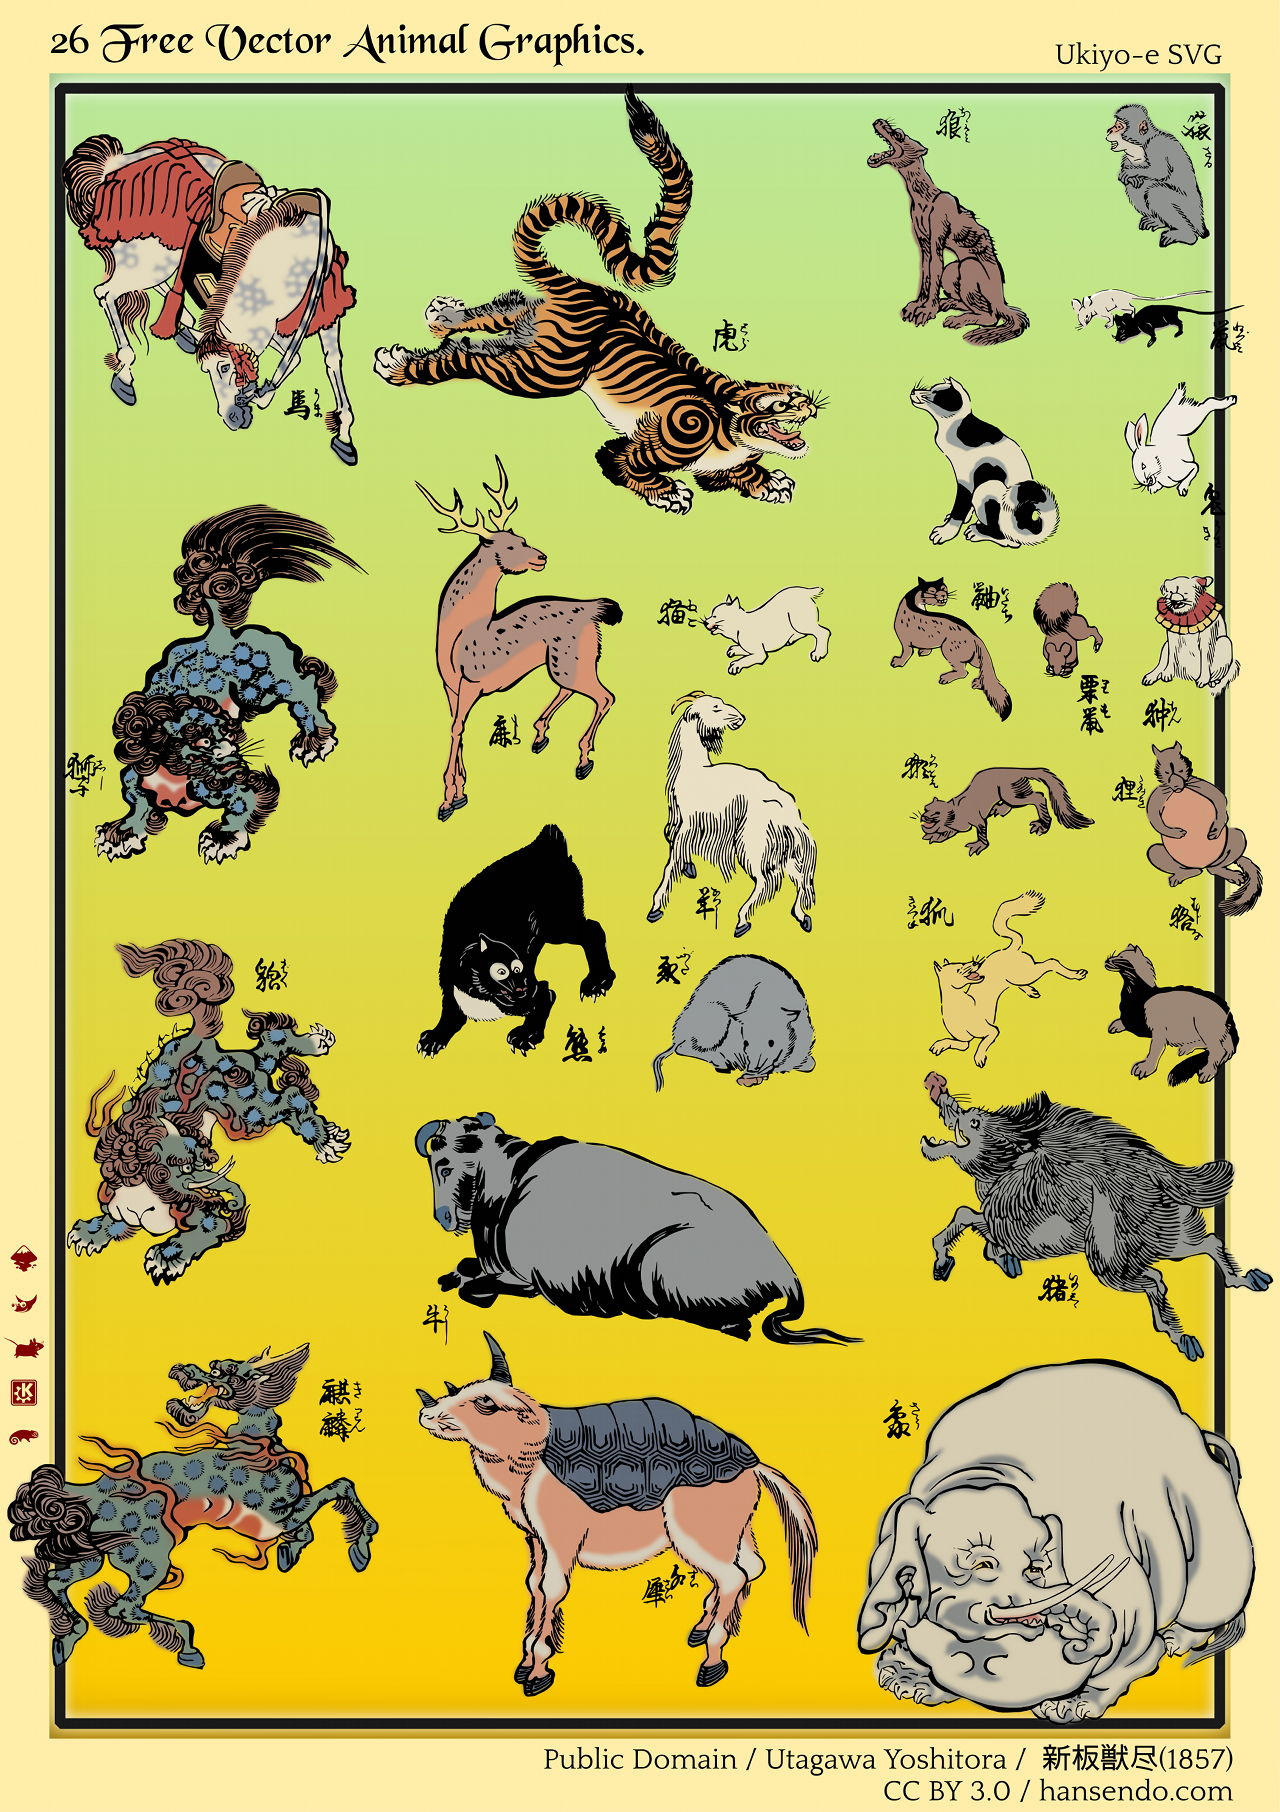 26 Free Vector Animal Graphics - Ukiyo-e-SVG by hansendo